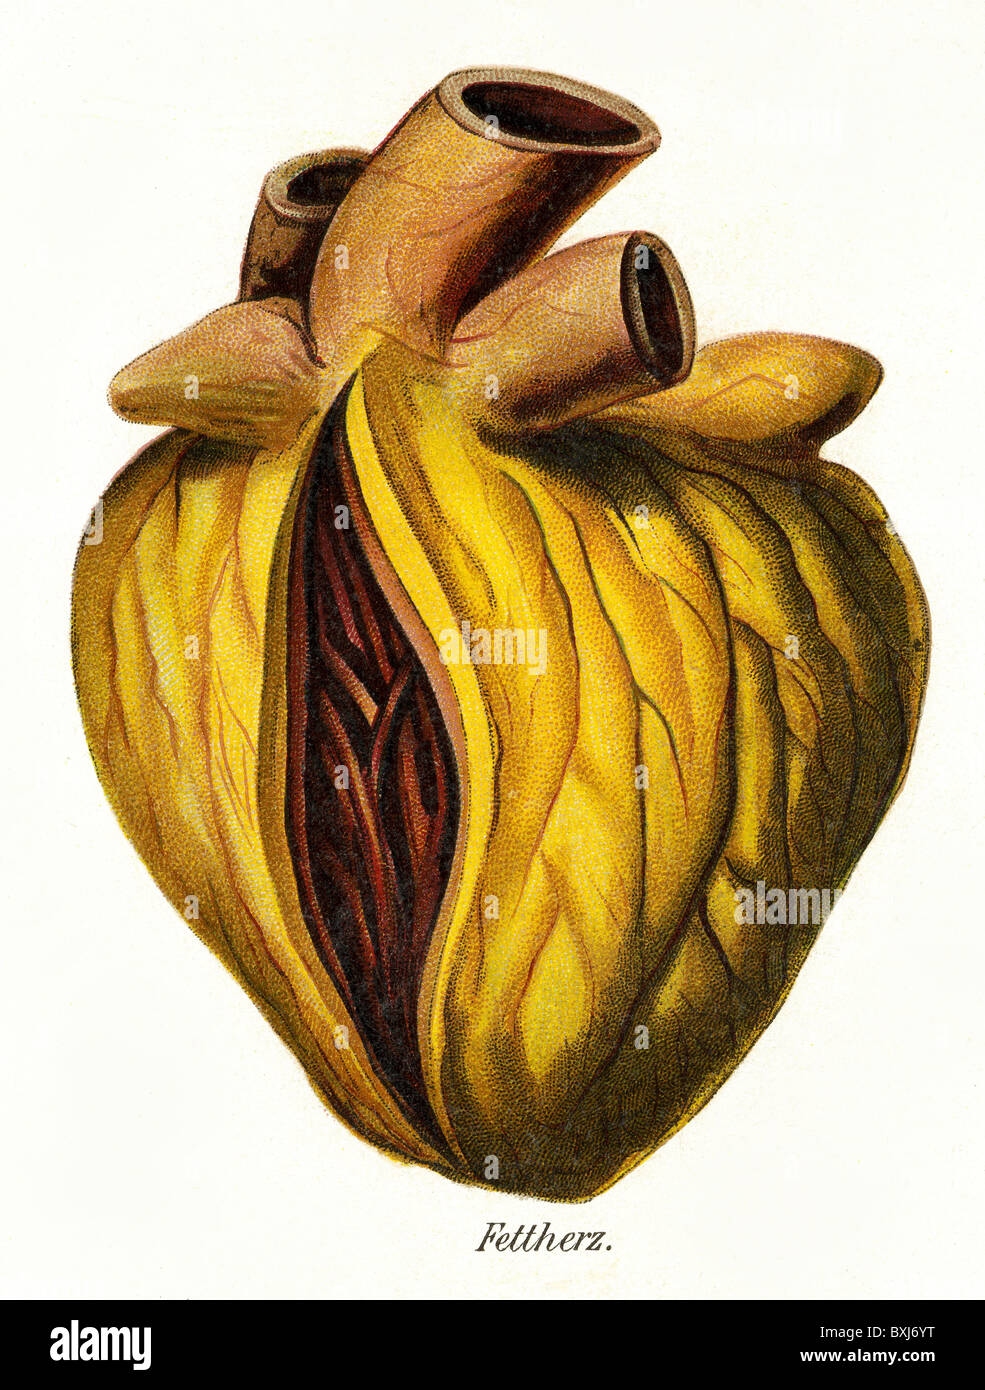 medicine, diseases, heart disease, fatty heart, lithograph, Germany, circa 1900, Additional-Rights-Clearences-NA - Stock Image